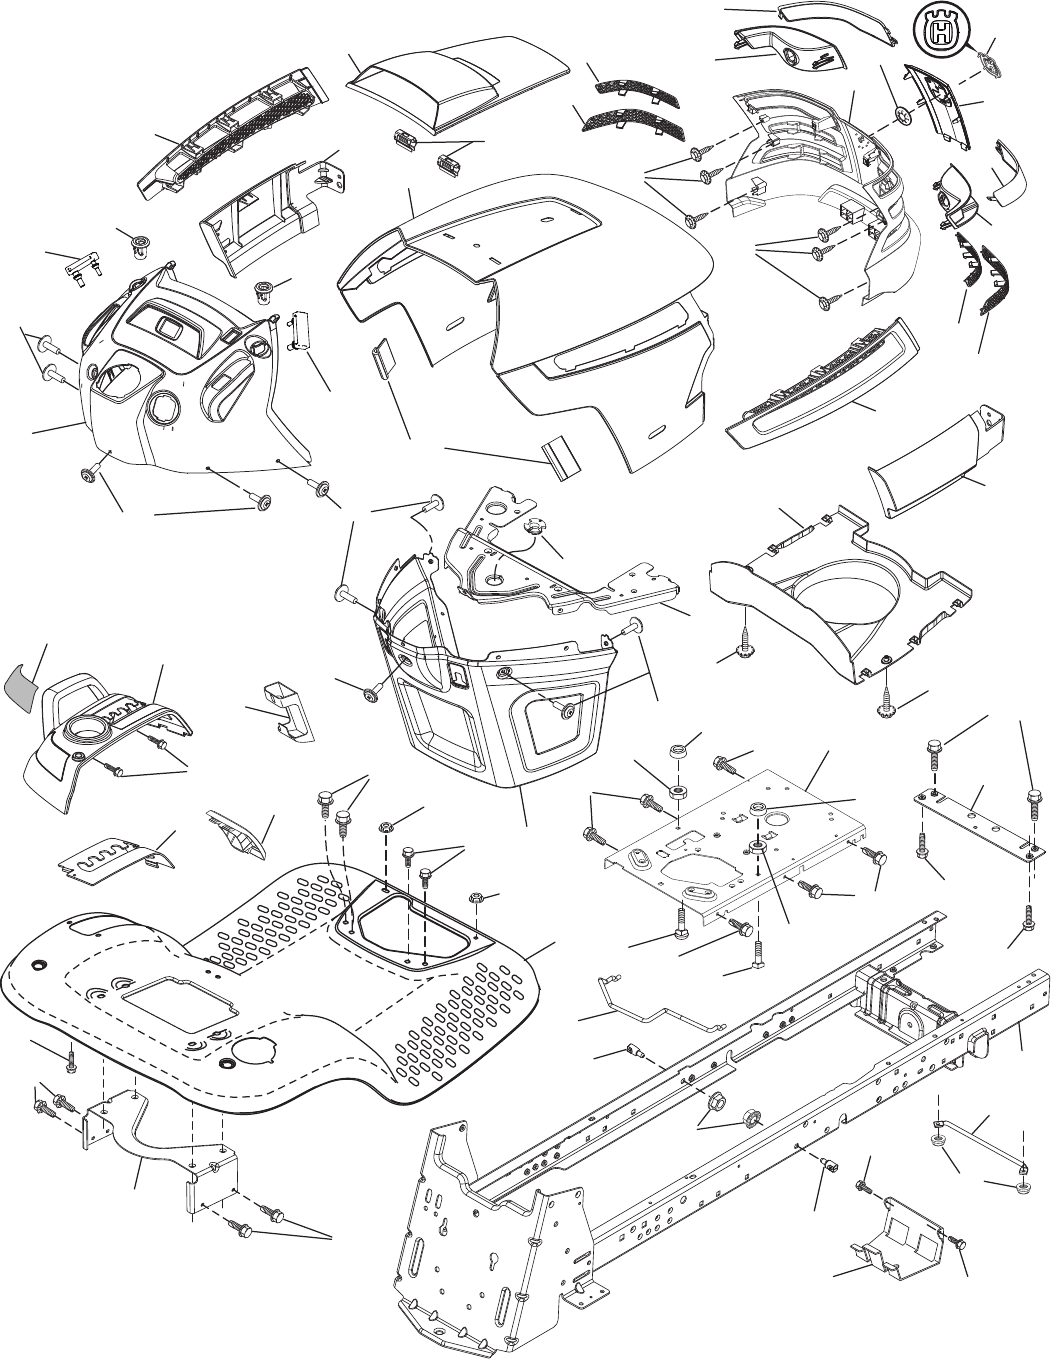 Page 33 of Husqvarna Lawn Mower 03002 User Guide